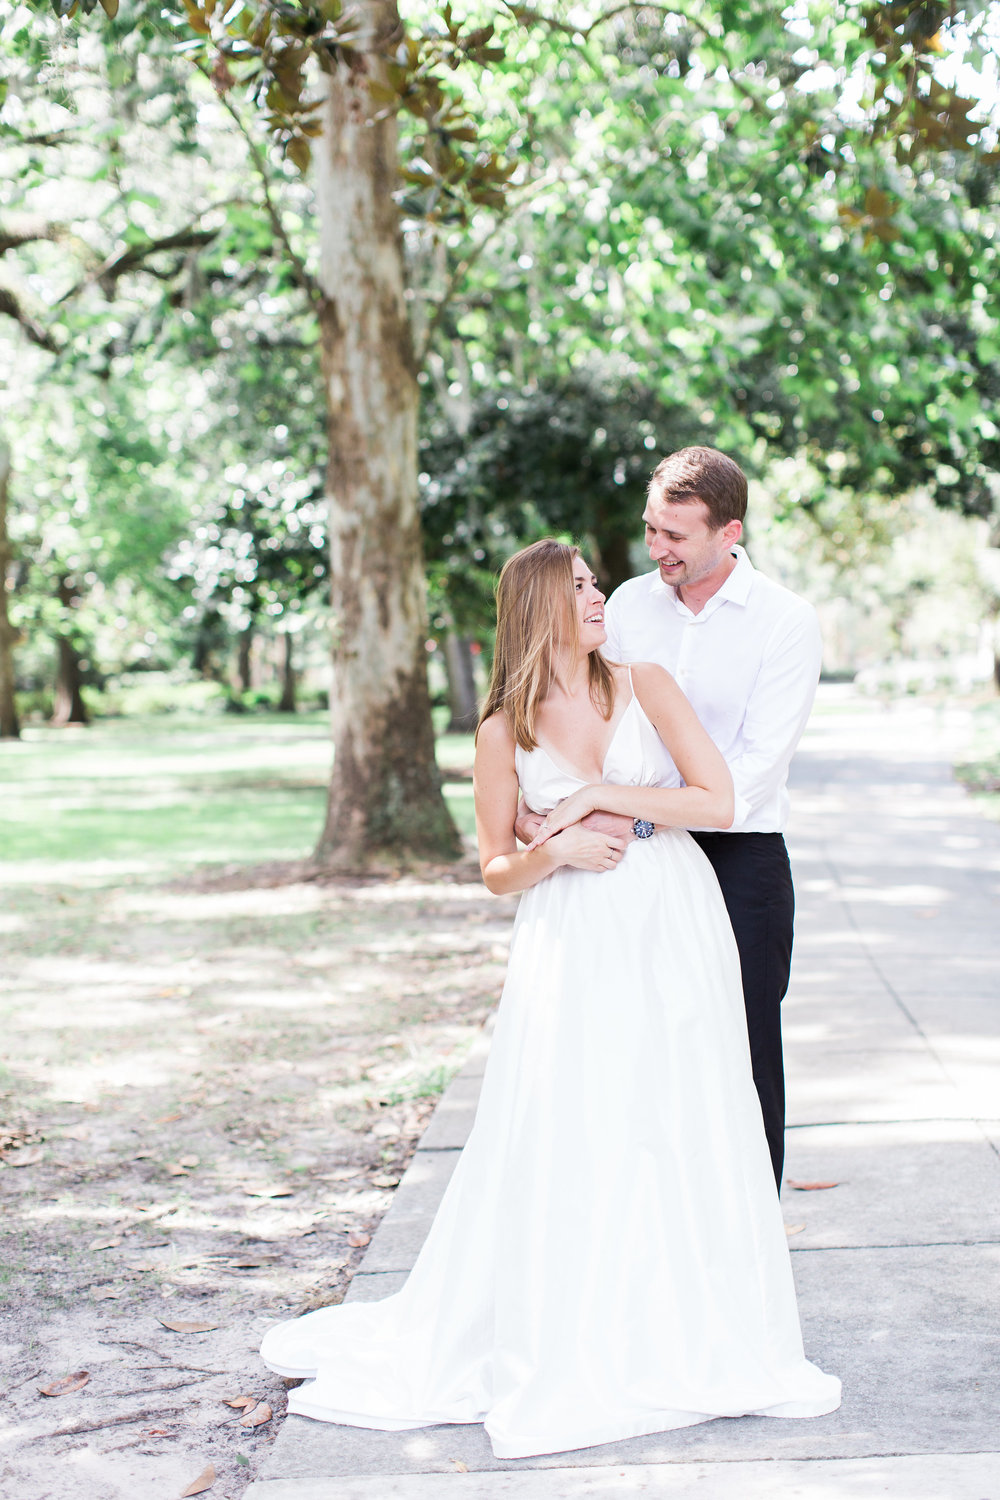 apt-b-photography-kate-mcdonald-mccants-forsyth-park-elopement-forsyth-fountain-rainy-wedding-day-savannah-florist-ivory-and-beau-bridal-boutique-savannah-wedding-gowns-savannah-weddings-savannah-wedding-planner-adele-amelia-gold-veil-4.jpg